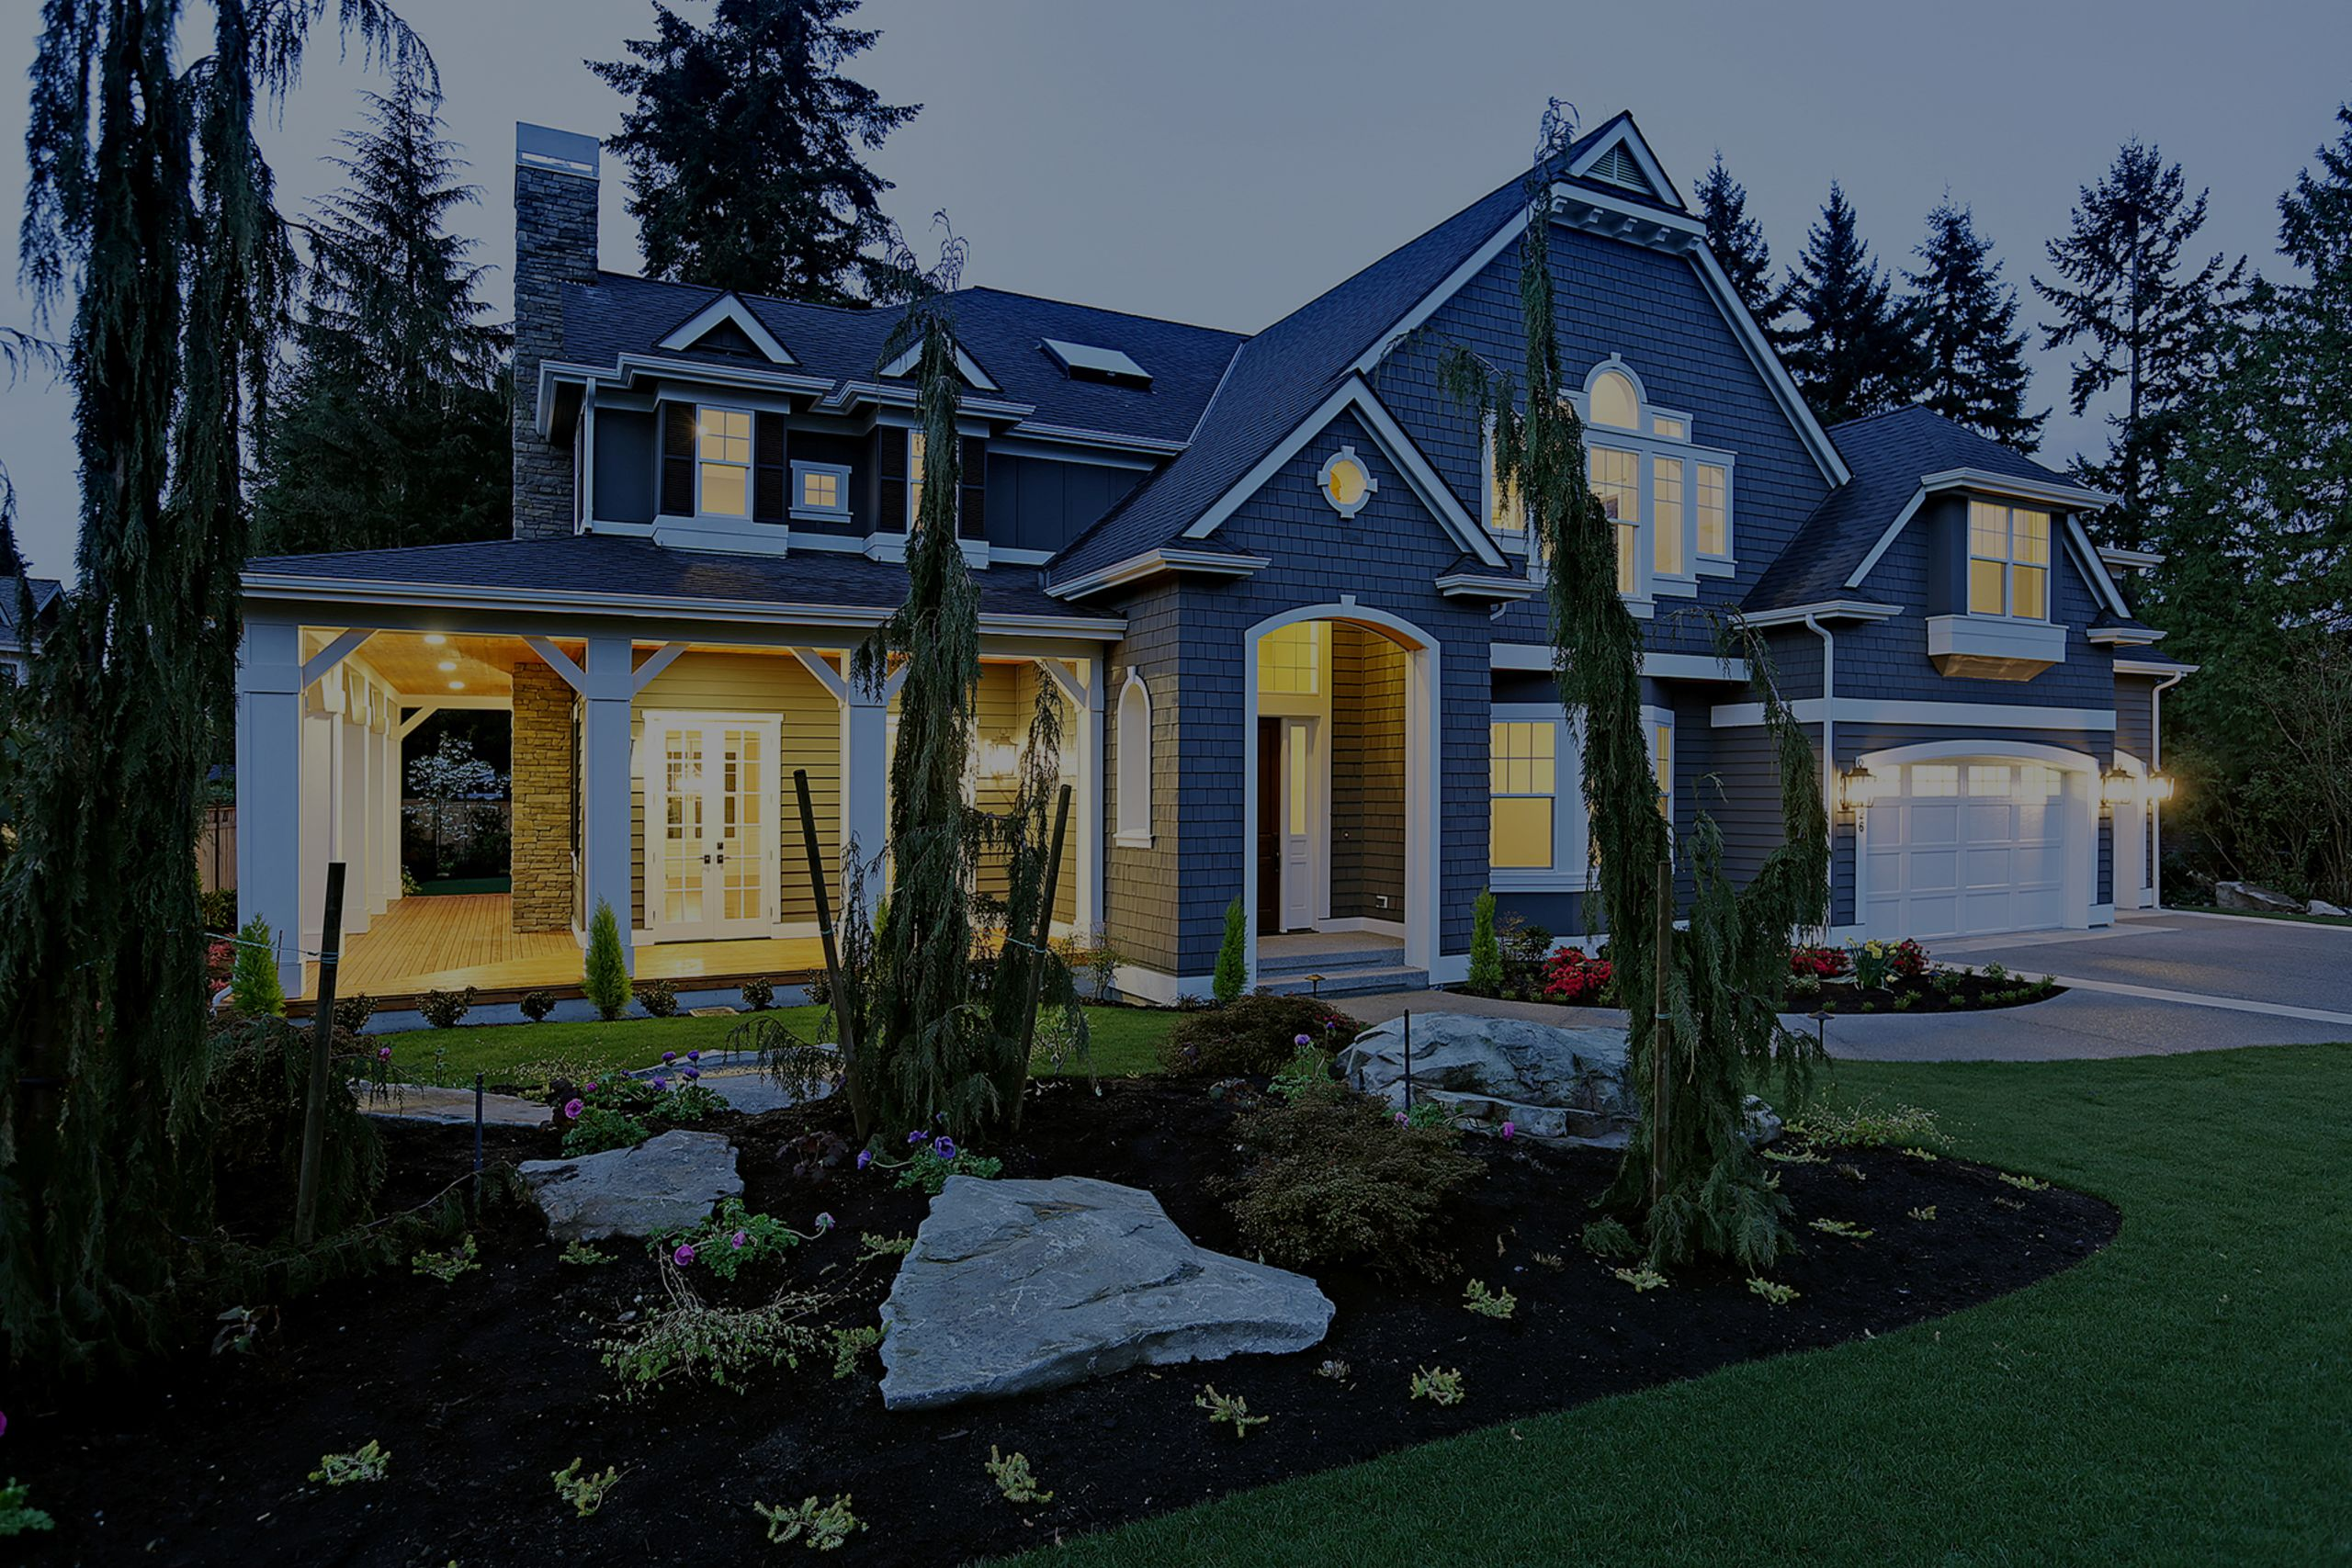 Seattle real estate even hotter after BC tax